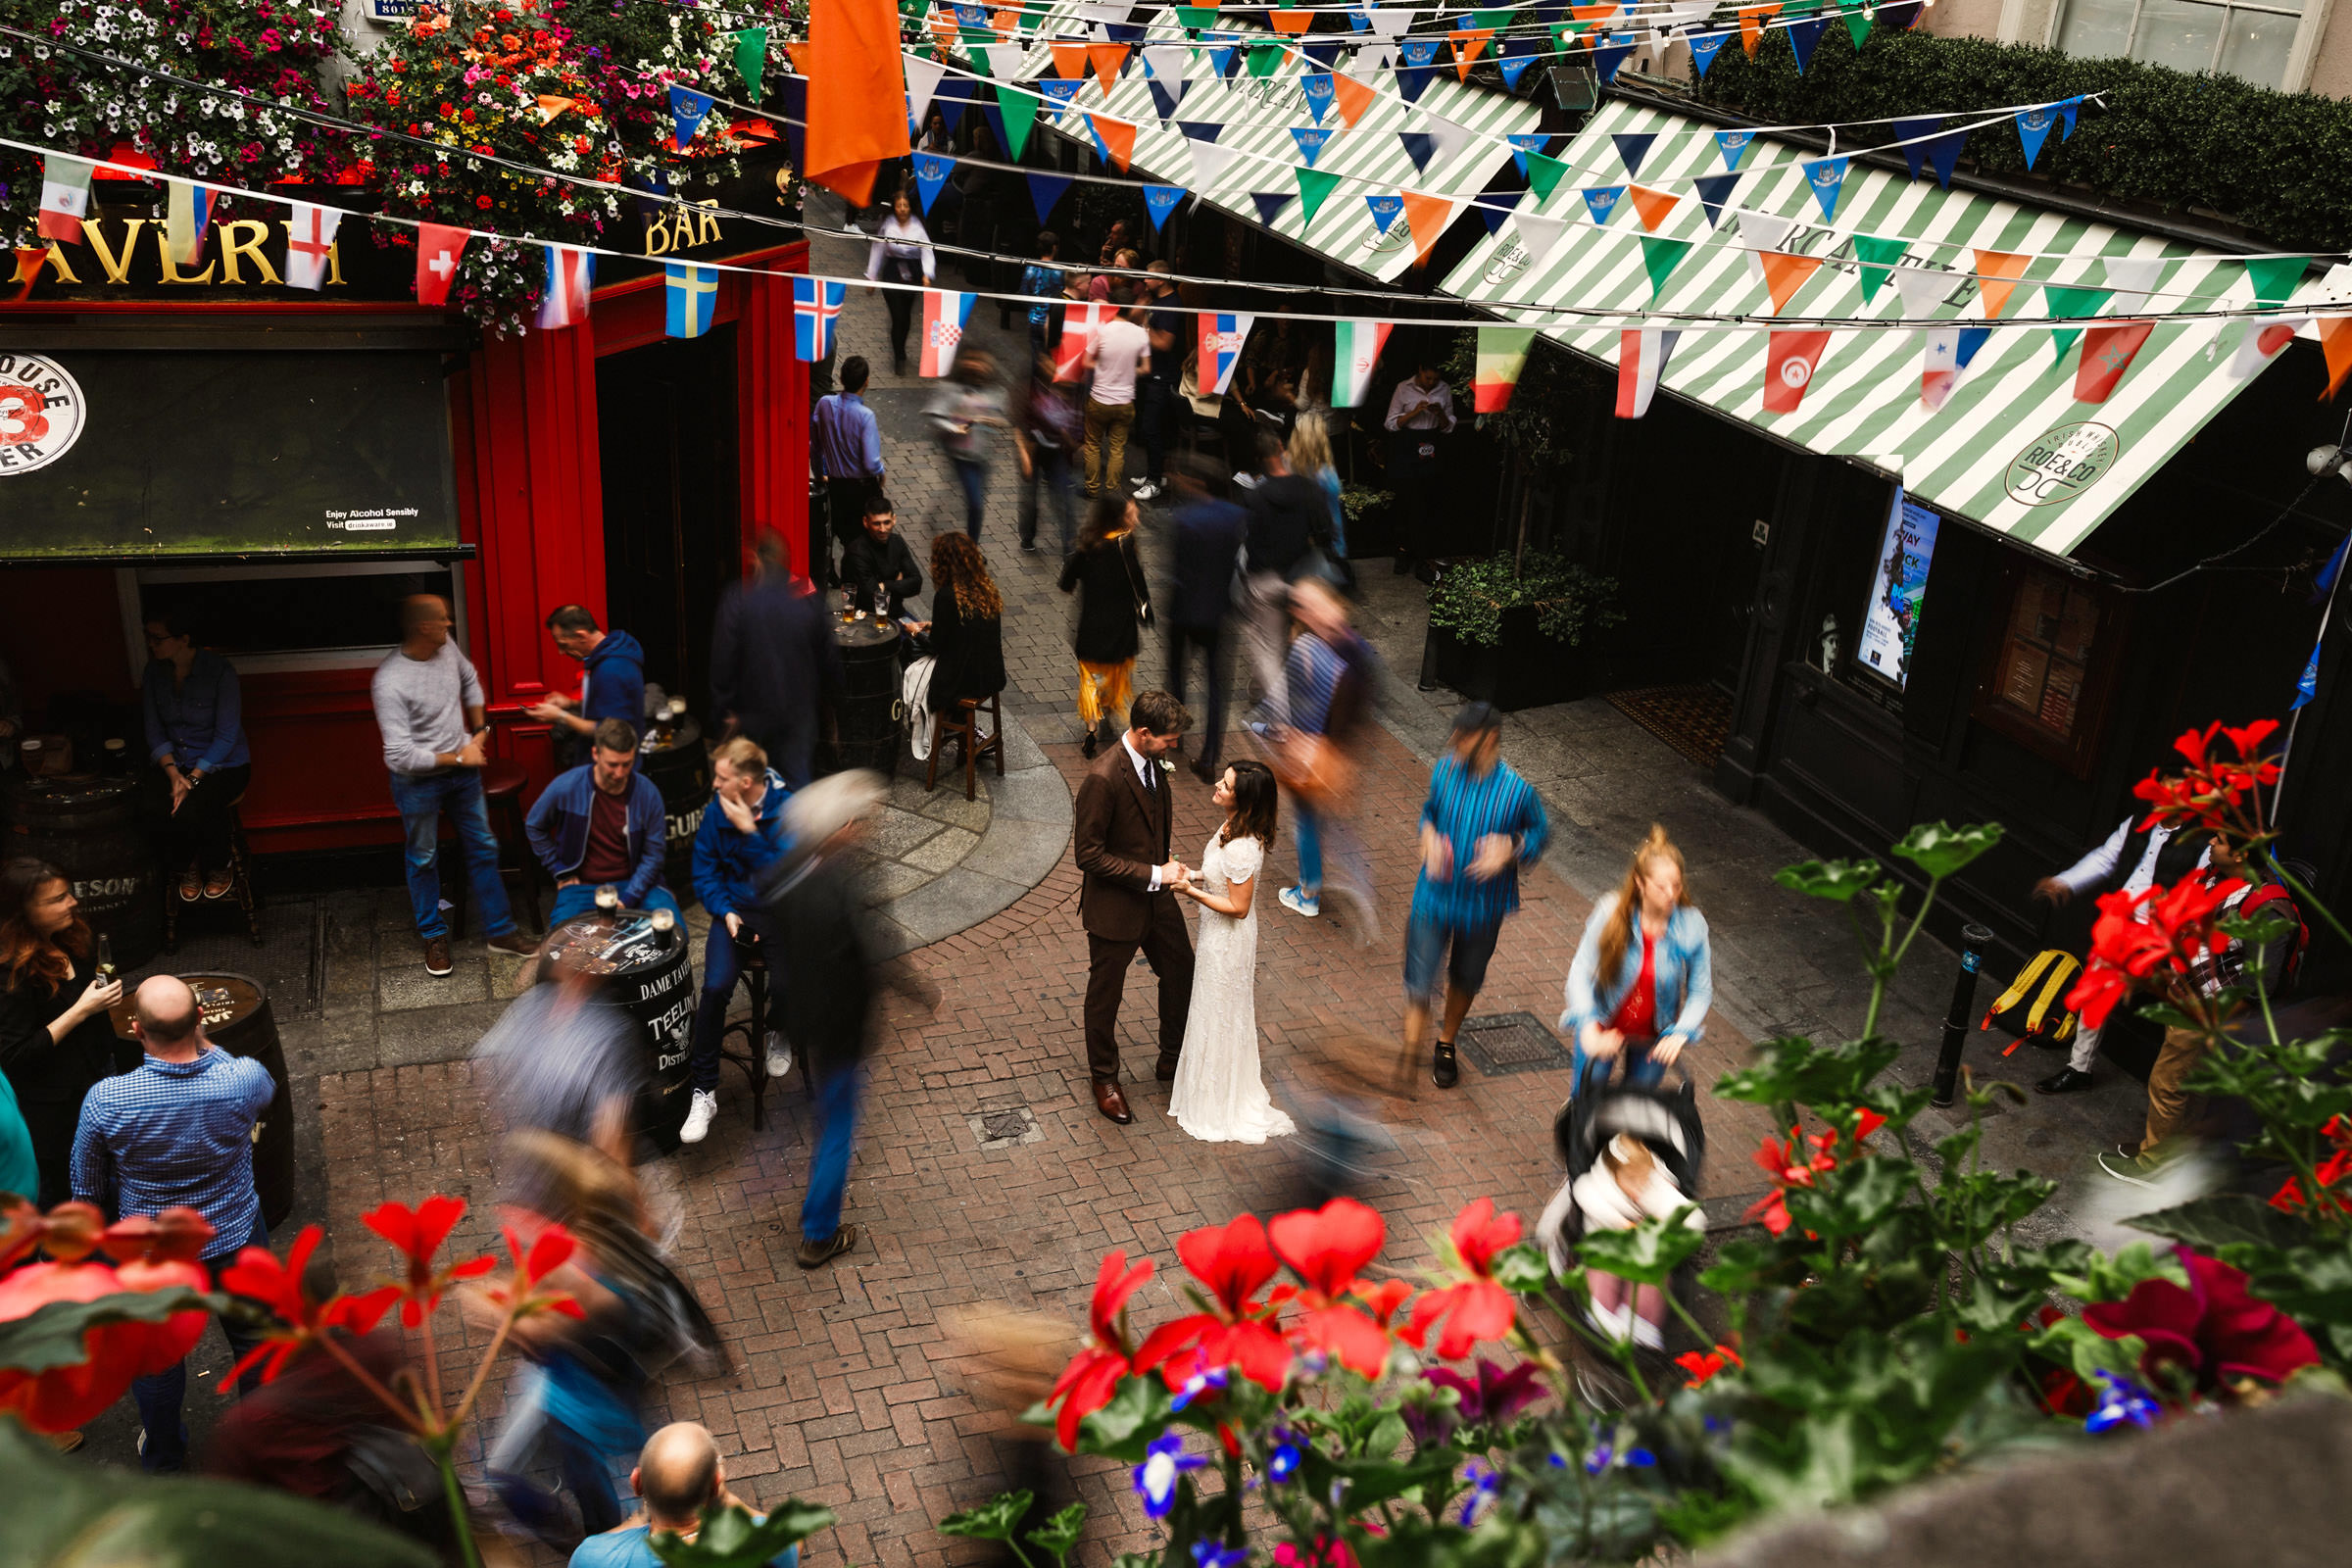 aerial-view-of-couple-in-ireland-street-scene-with-colorful-bunting-lima-conlon-photography